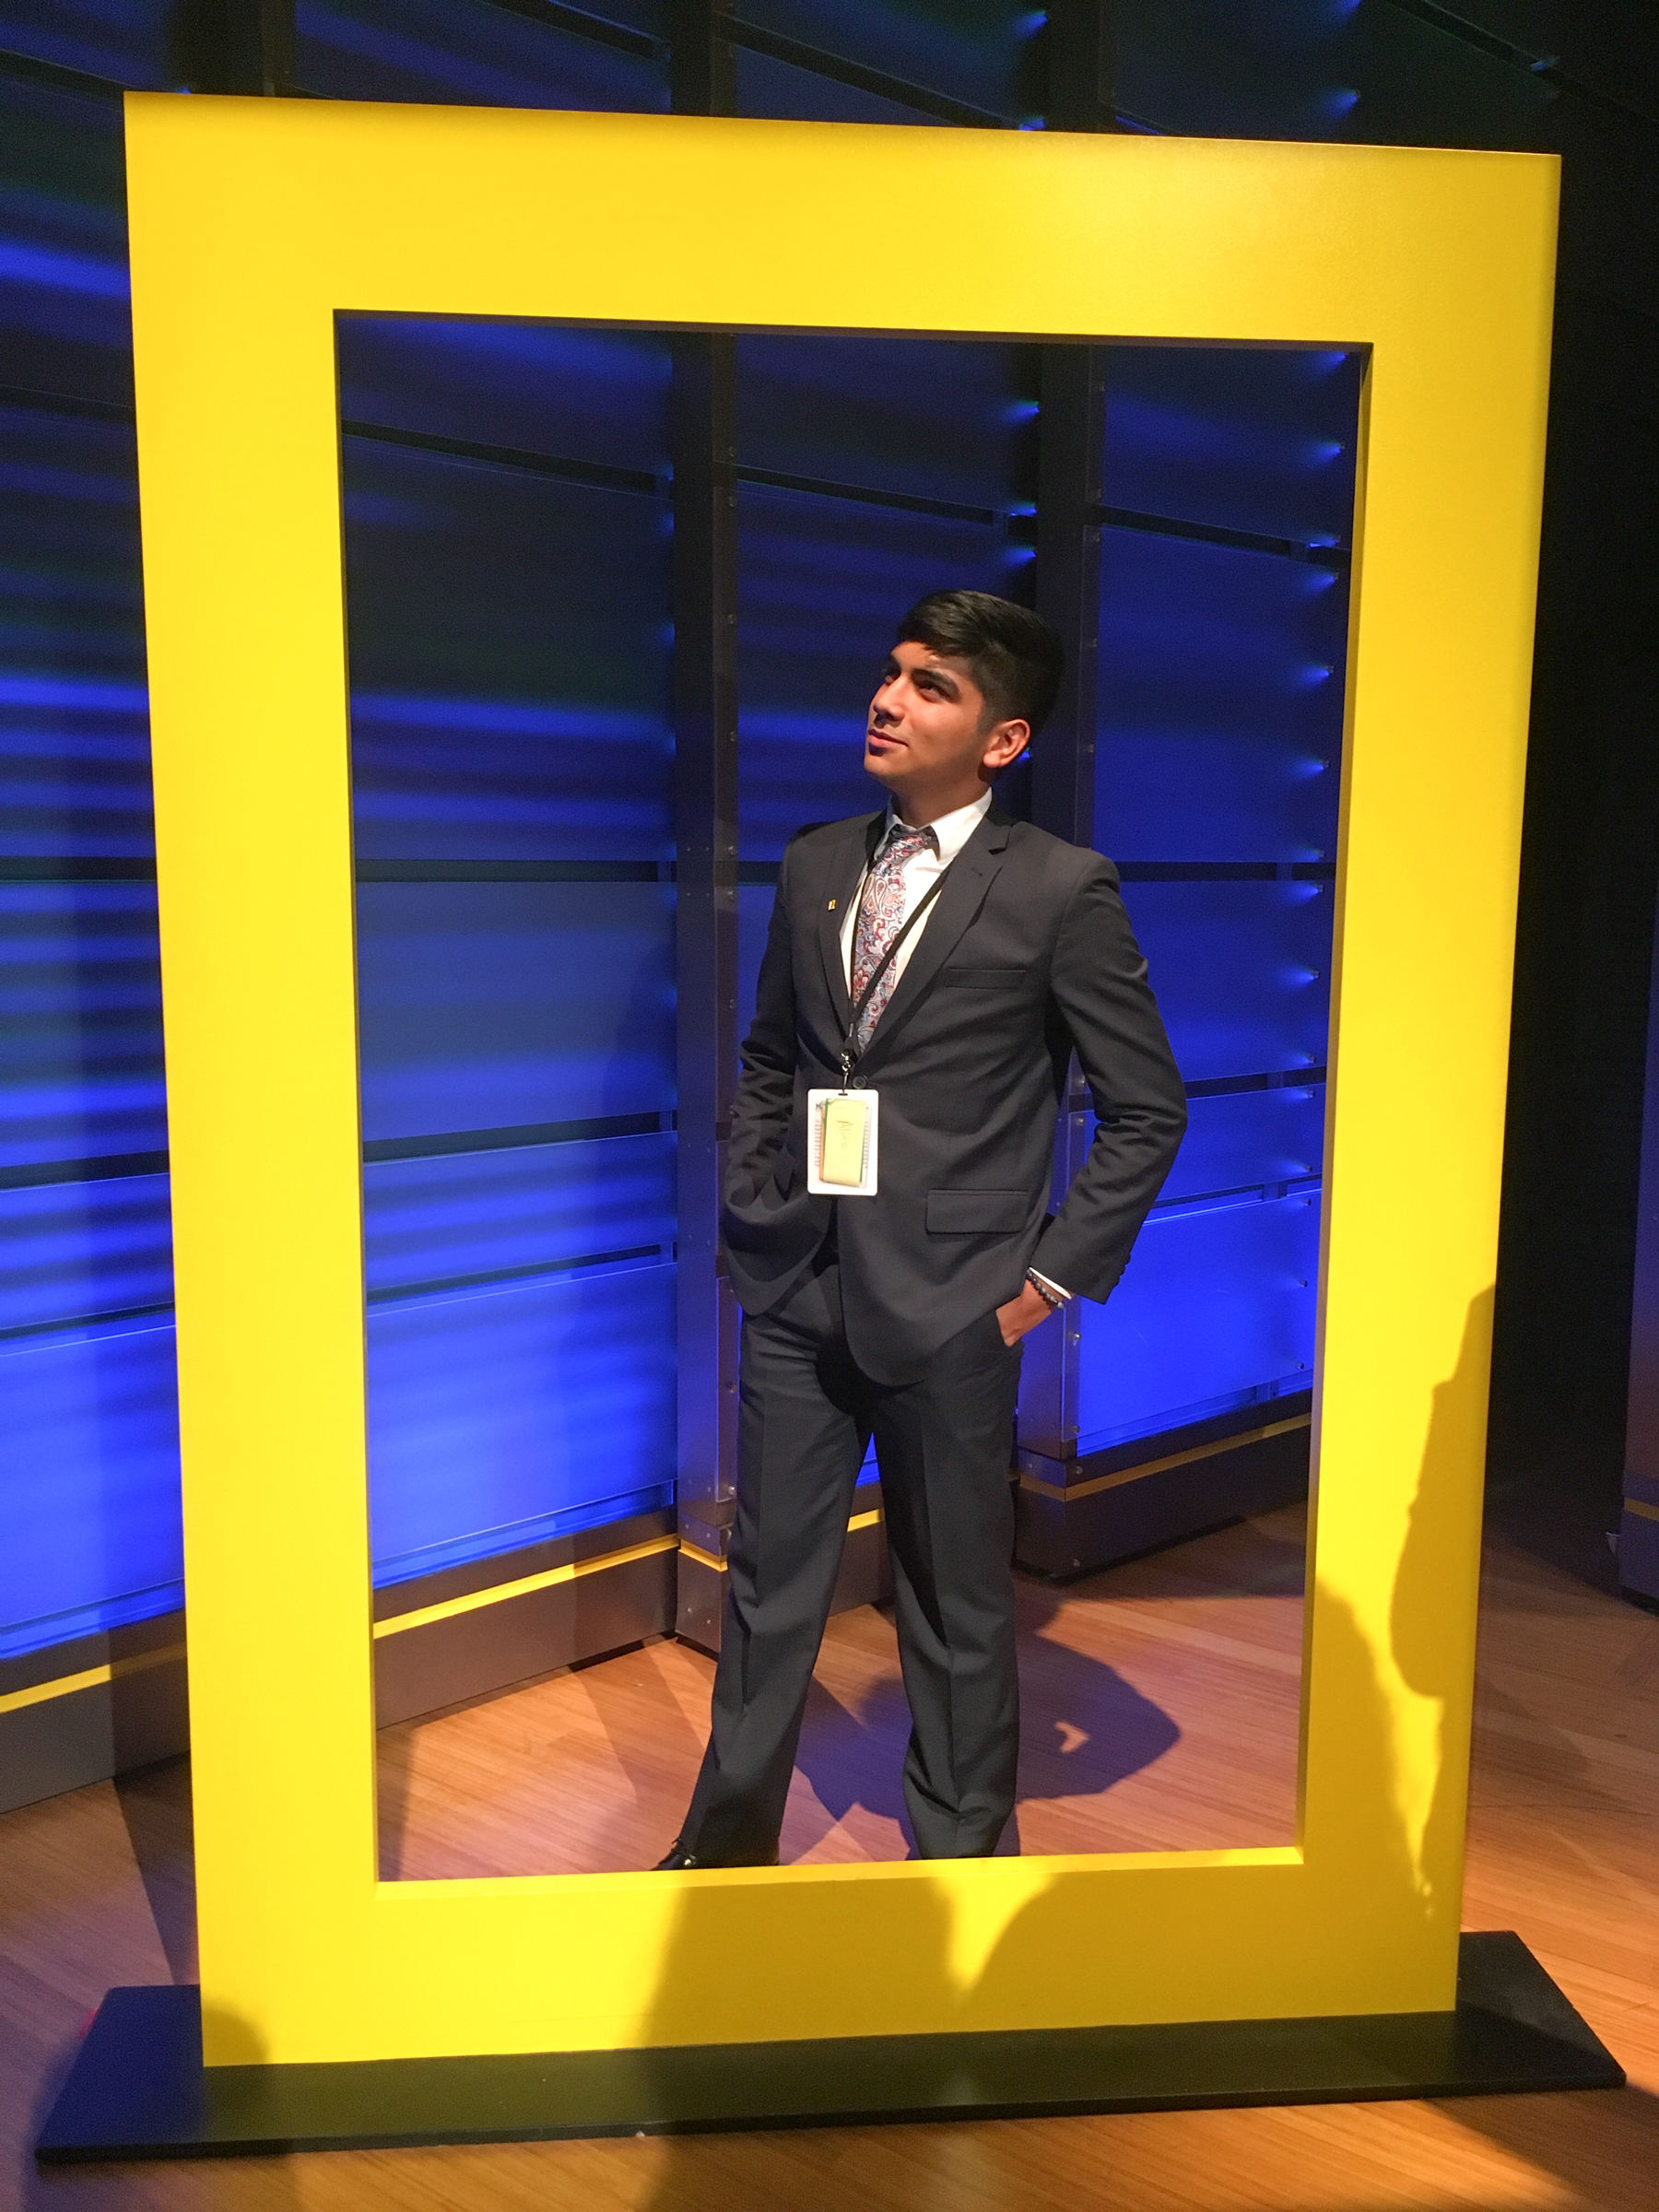 Ponce posing underneath the National Geographic logo at its headquarters in Washington, D.C., where he attended a youth summit on the environment. Courtesy of Alonso Ponce